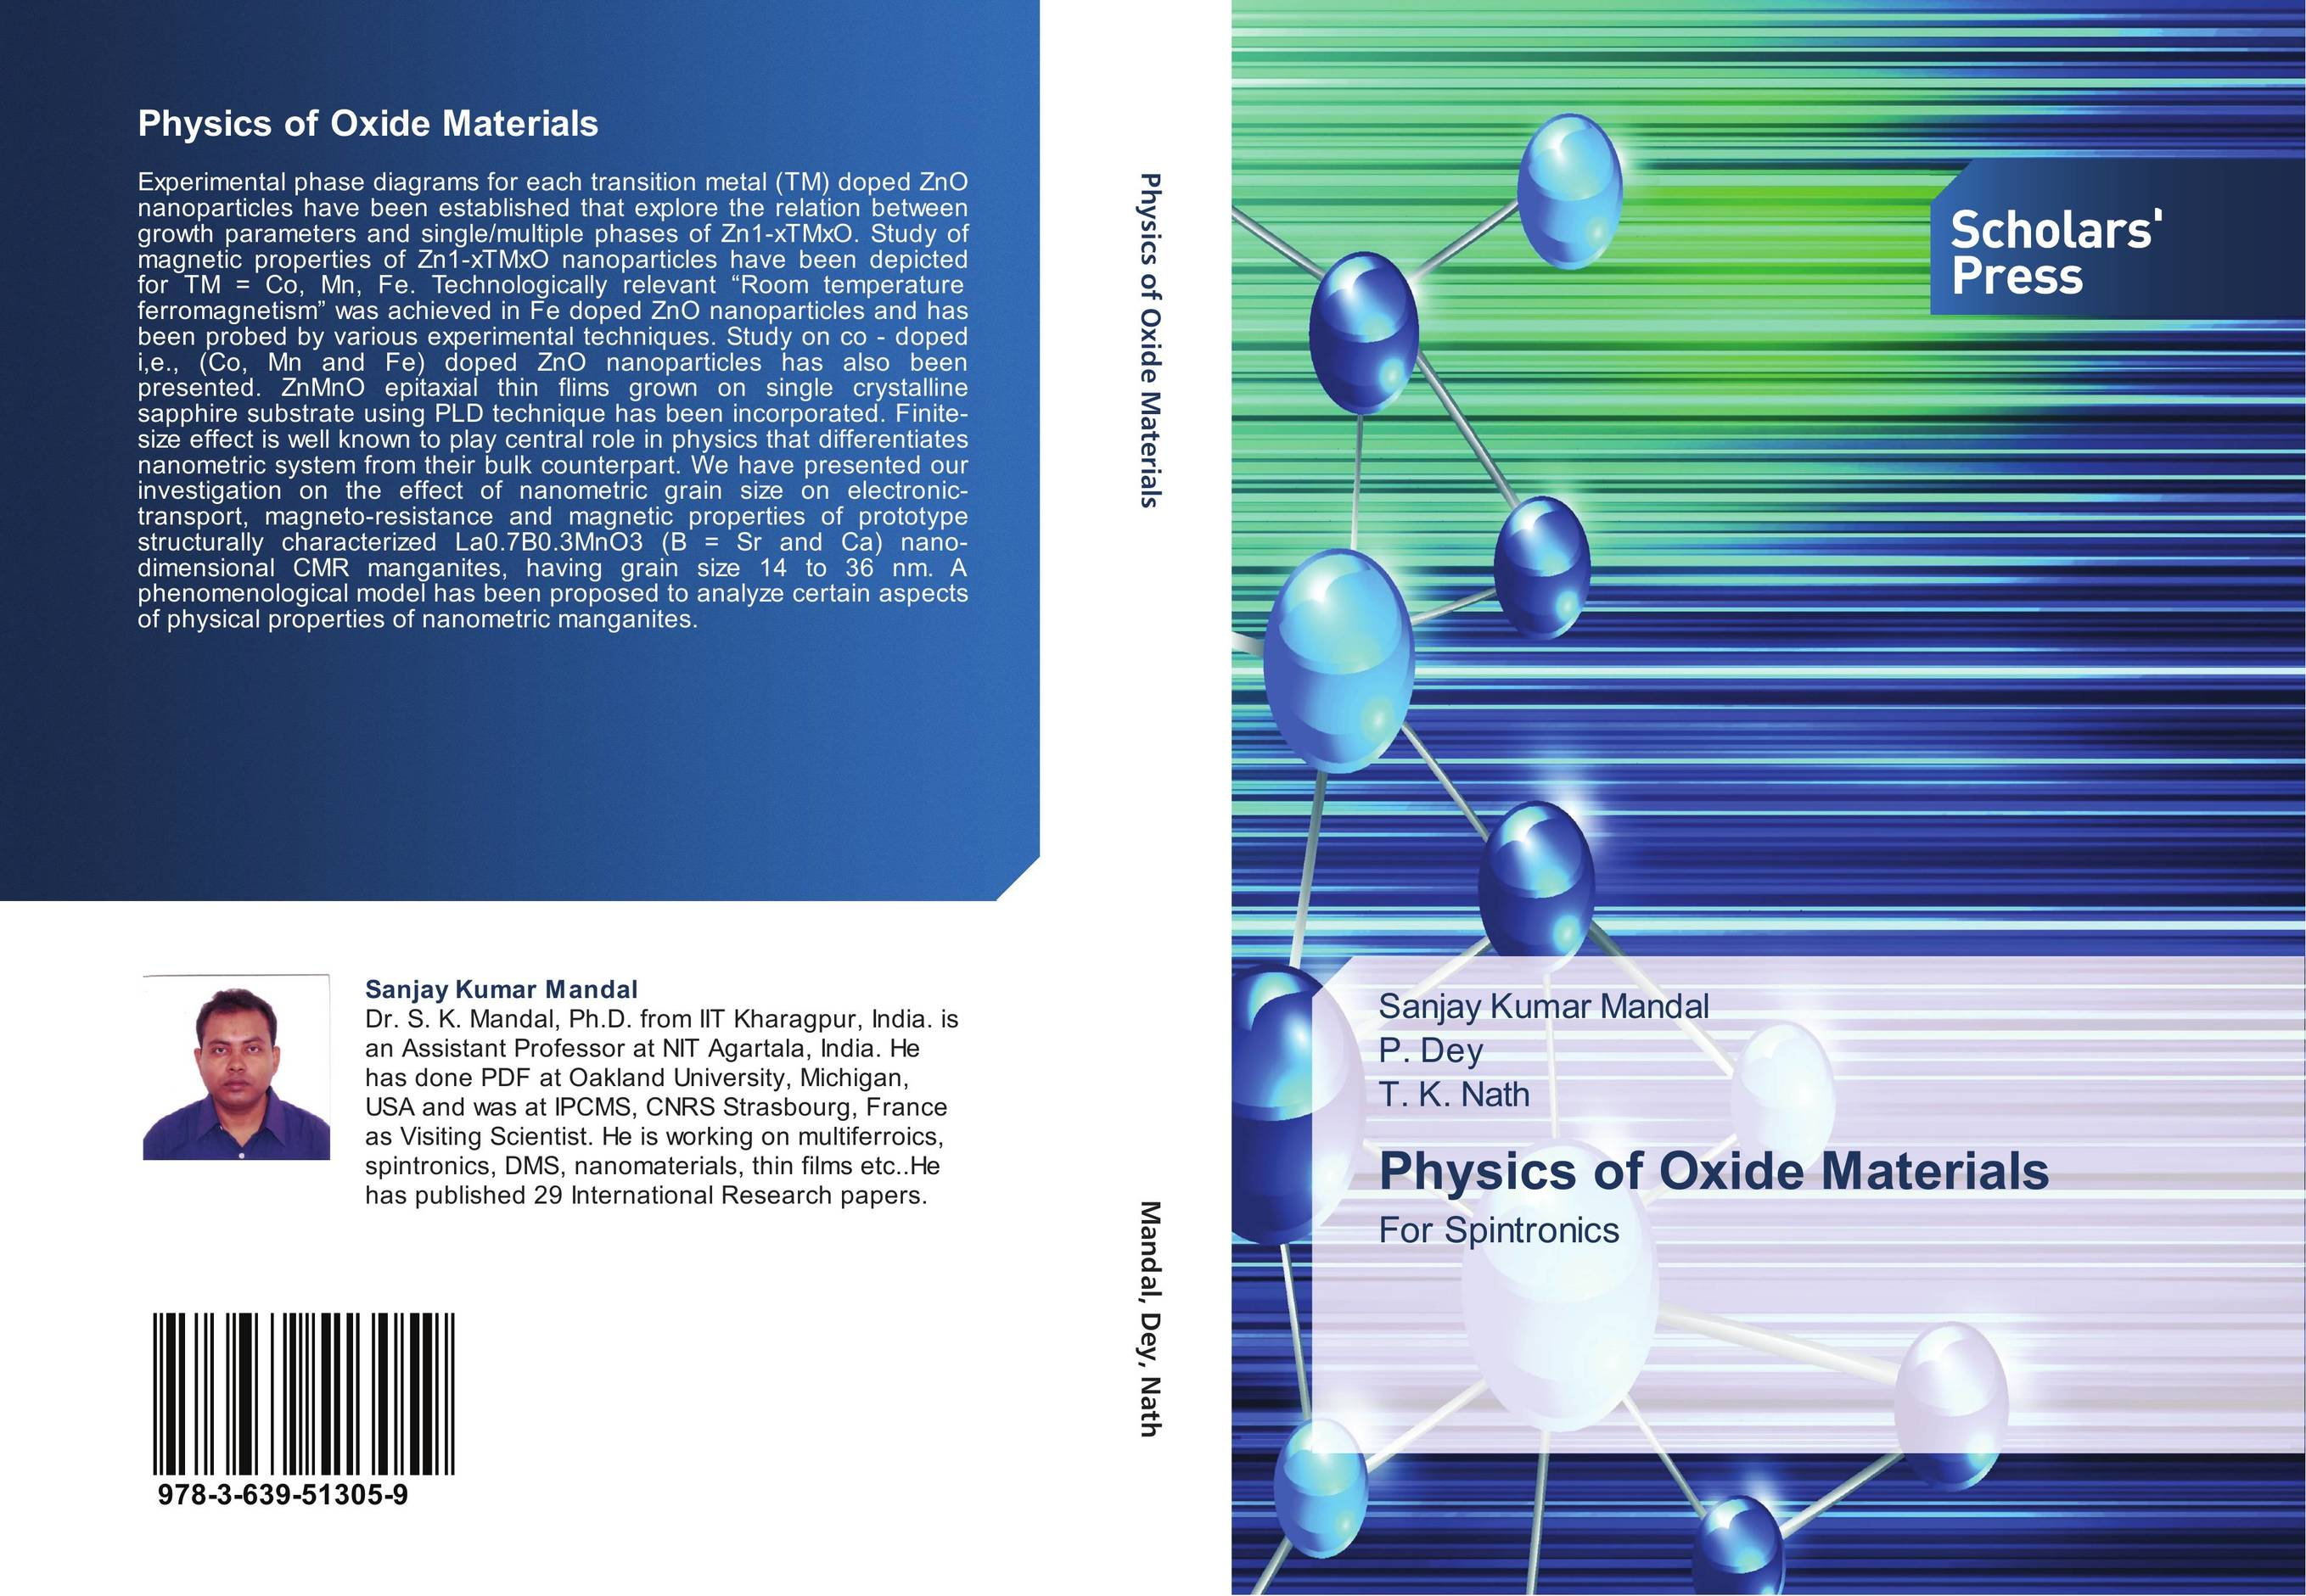 9783639513059 Physics of Oxide Materials Sanjay Kumar Mandal,P. Dey and T. K.